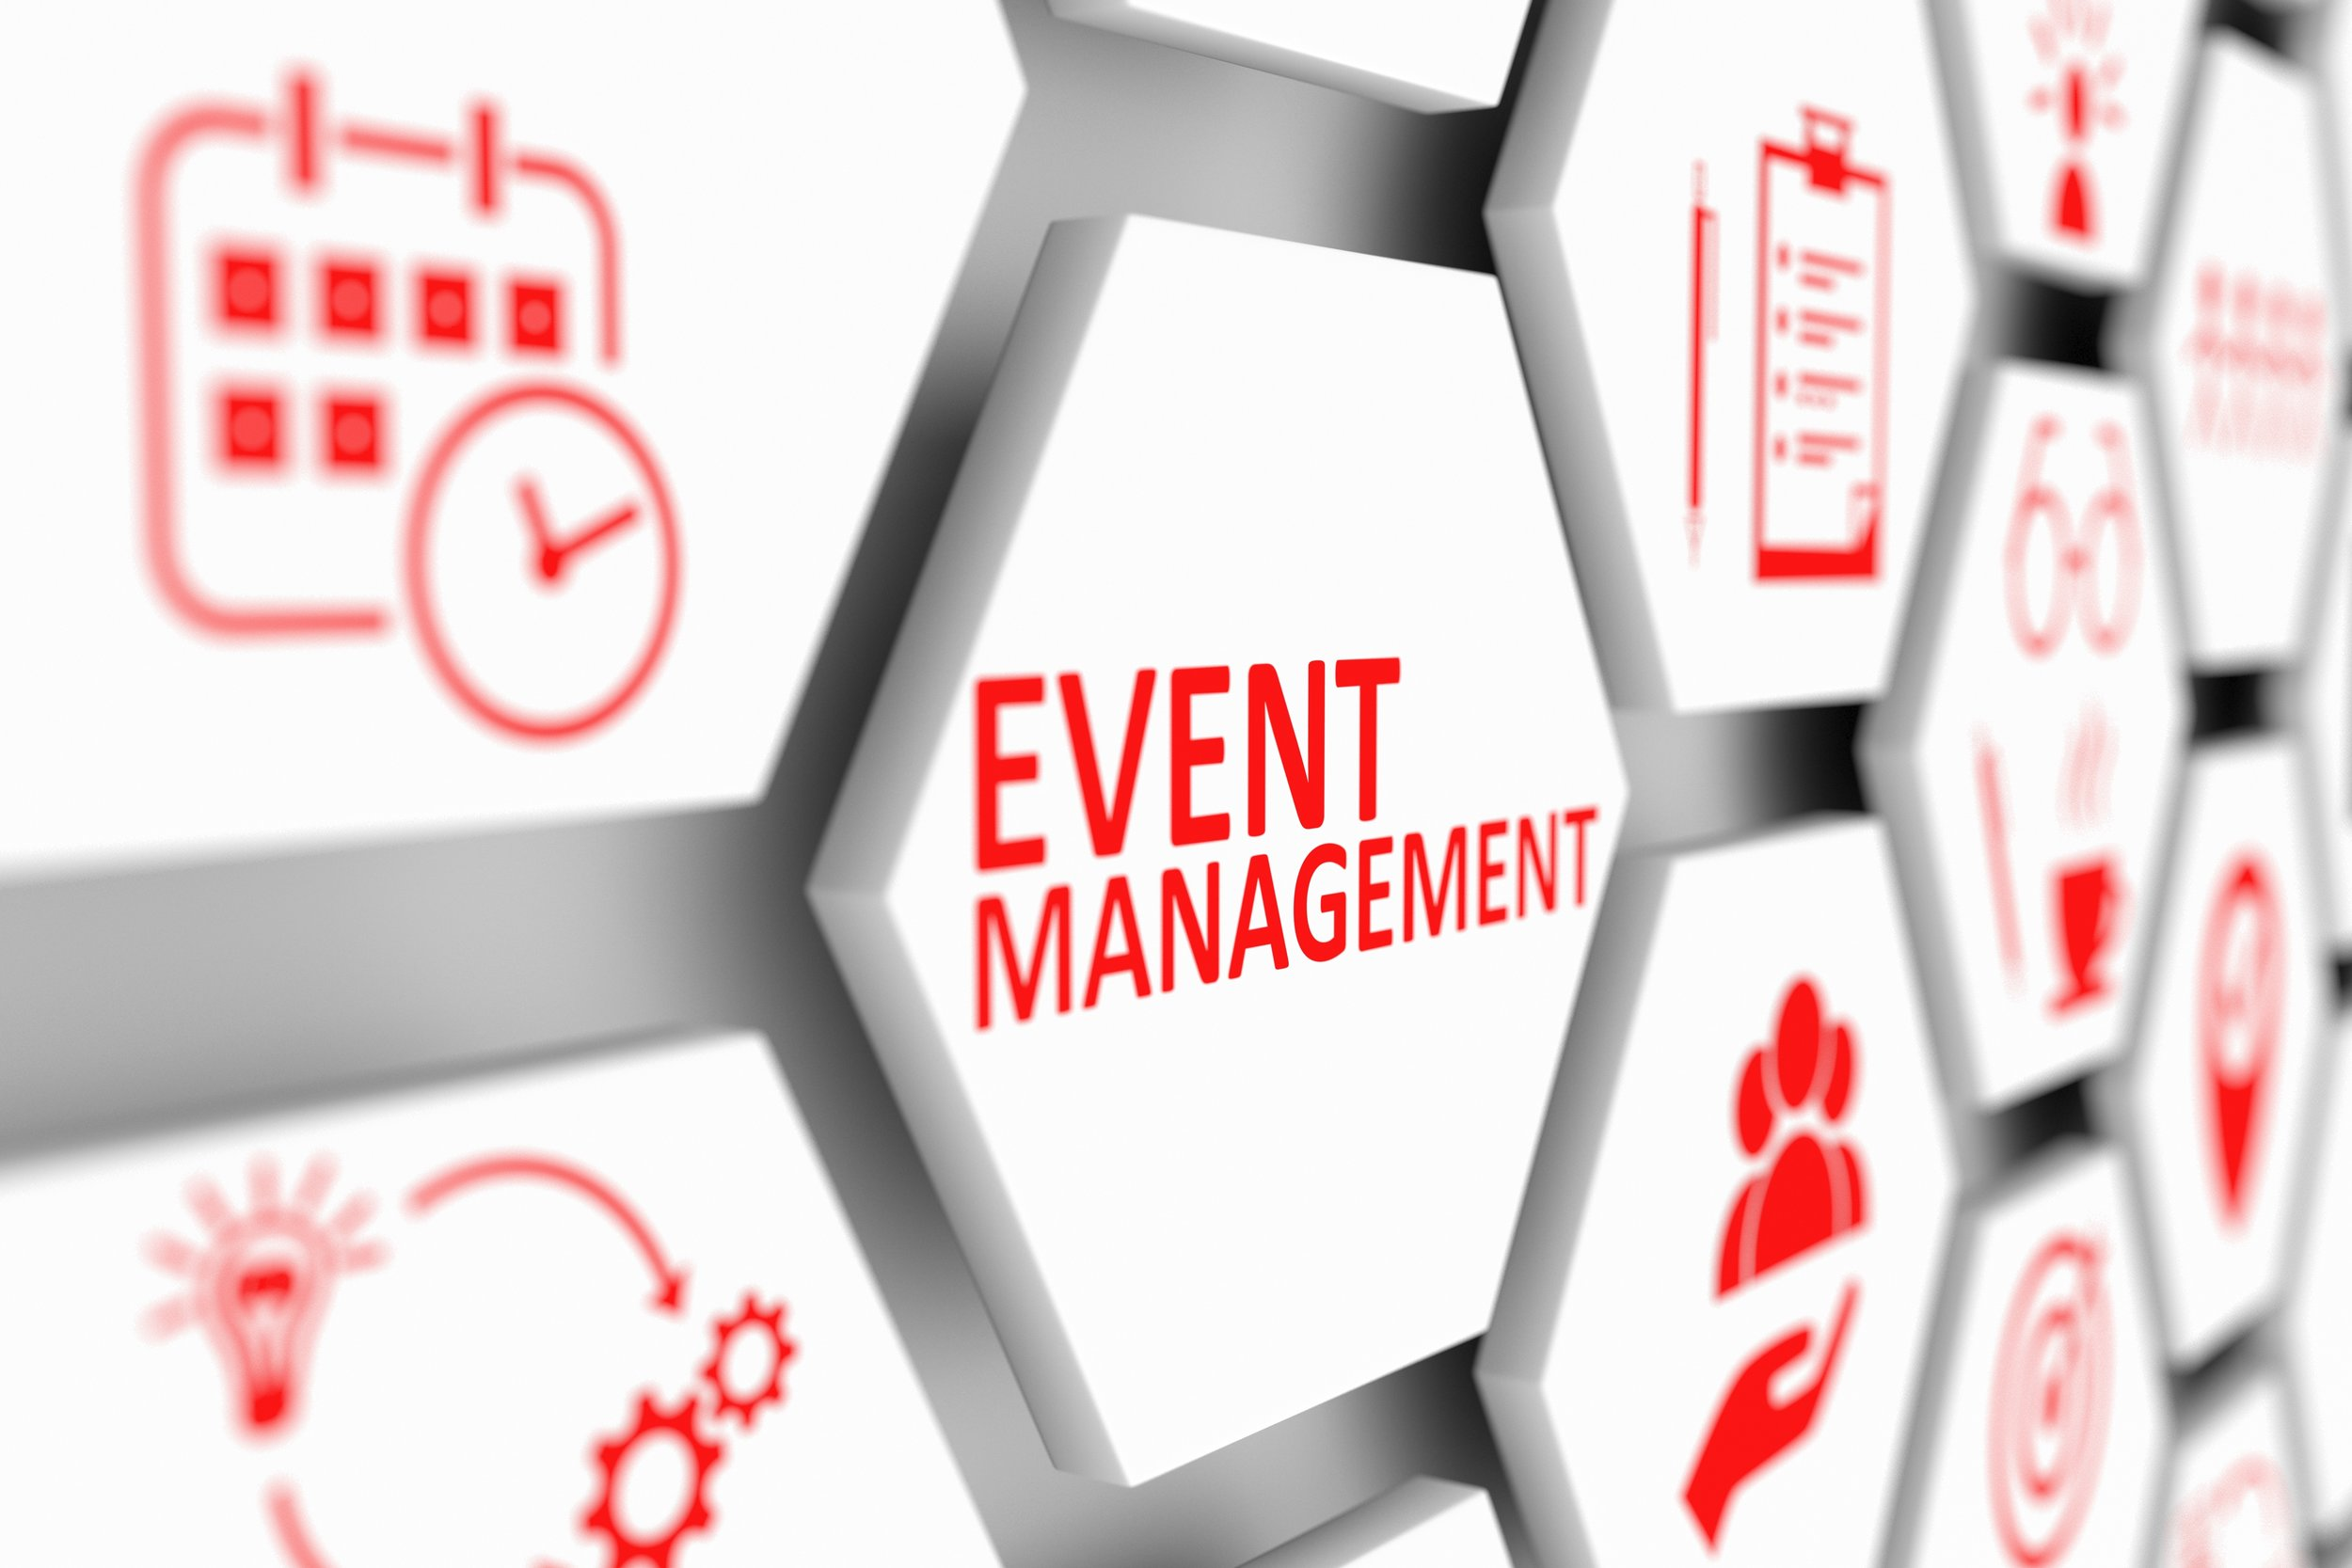 - Our team of experienced meeting planners become an extension of your team and will provide support where you need help the most. Your event needs to be flawless and stay within budget. We are here to help in any capacity to make your event – and you – look good.